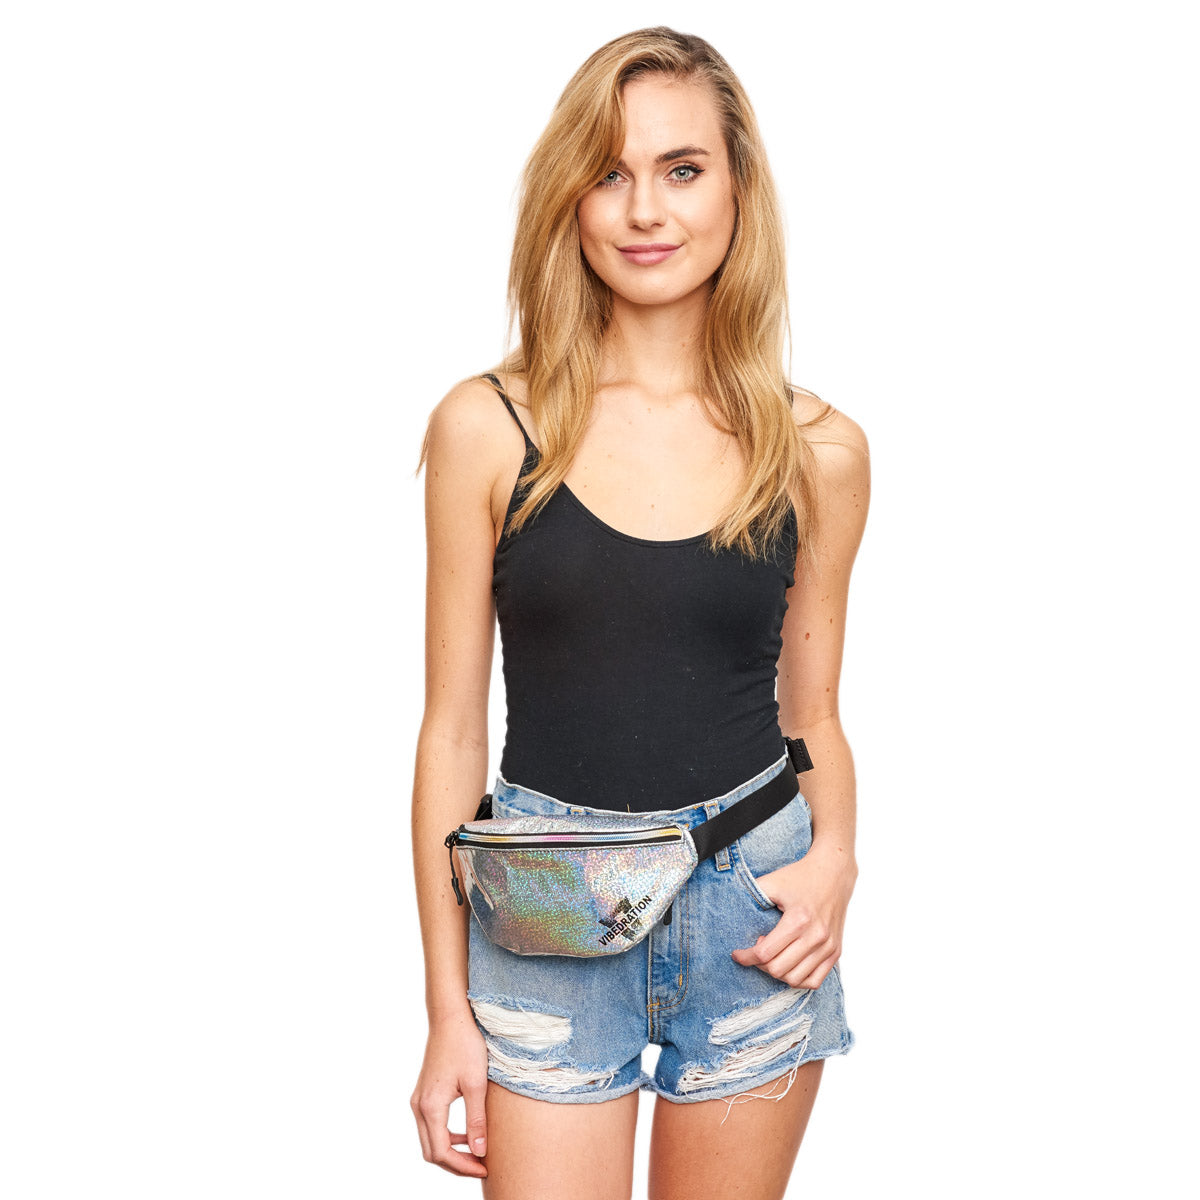 Girl wearing holographic silver fanny pack for music festivals